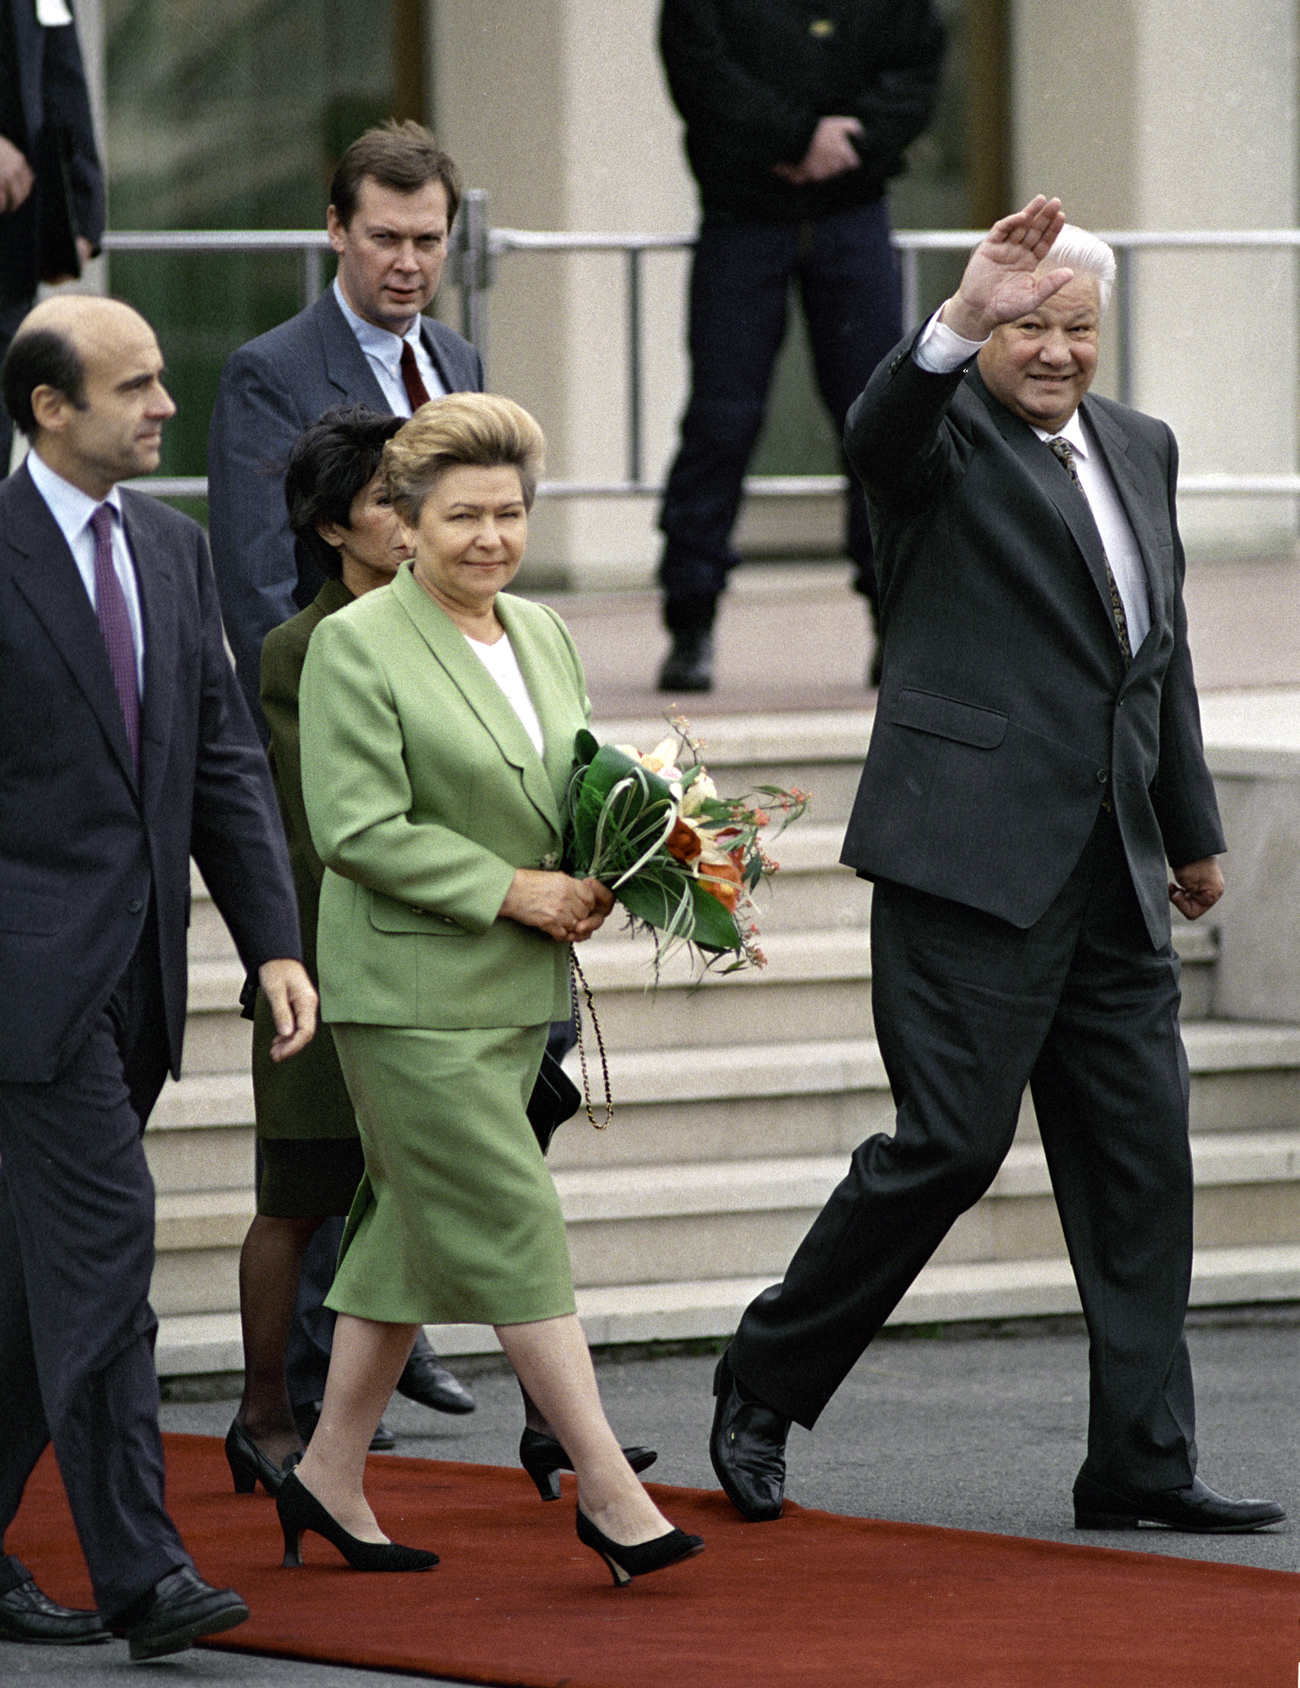 Russian President Boris Yeltsin (right) and Naina Yeltsin (center) at Orly Airport during their visit to France